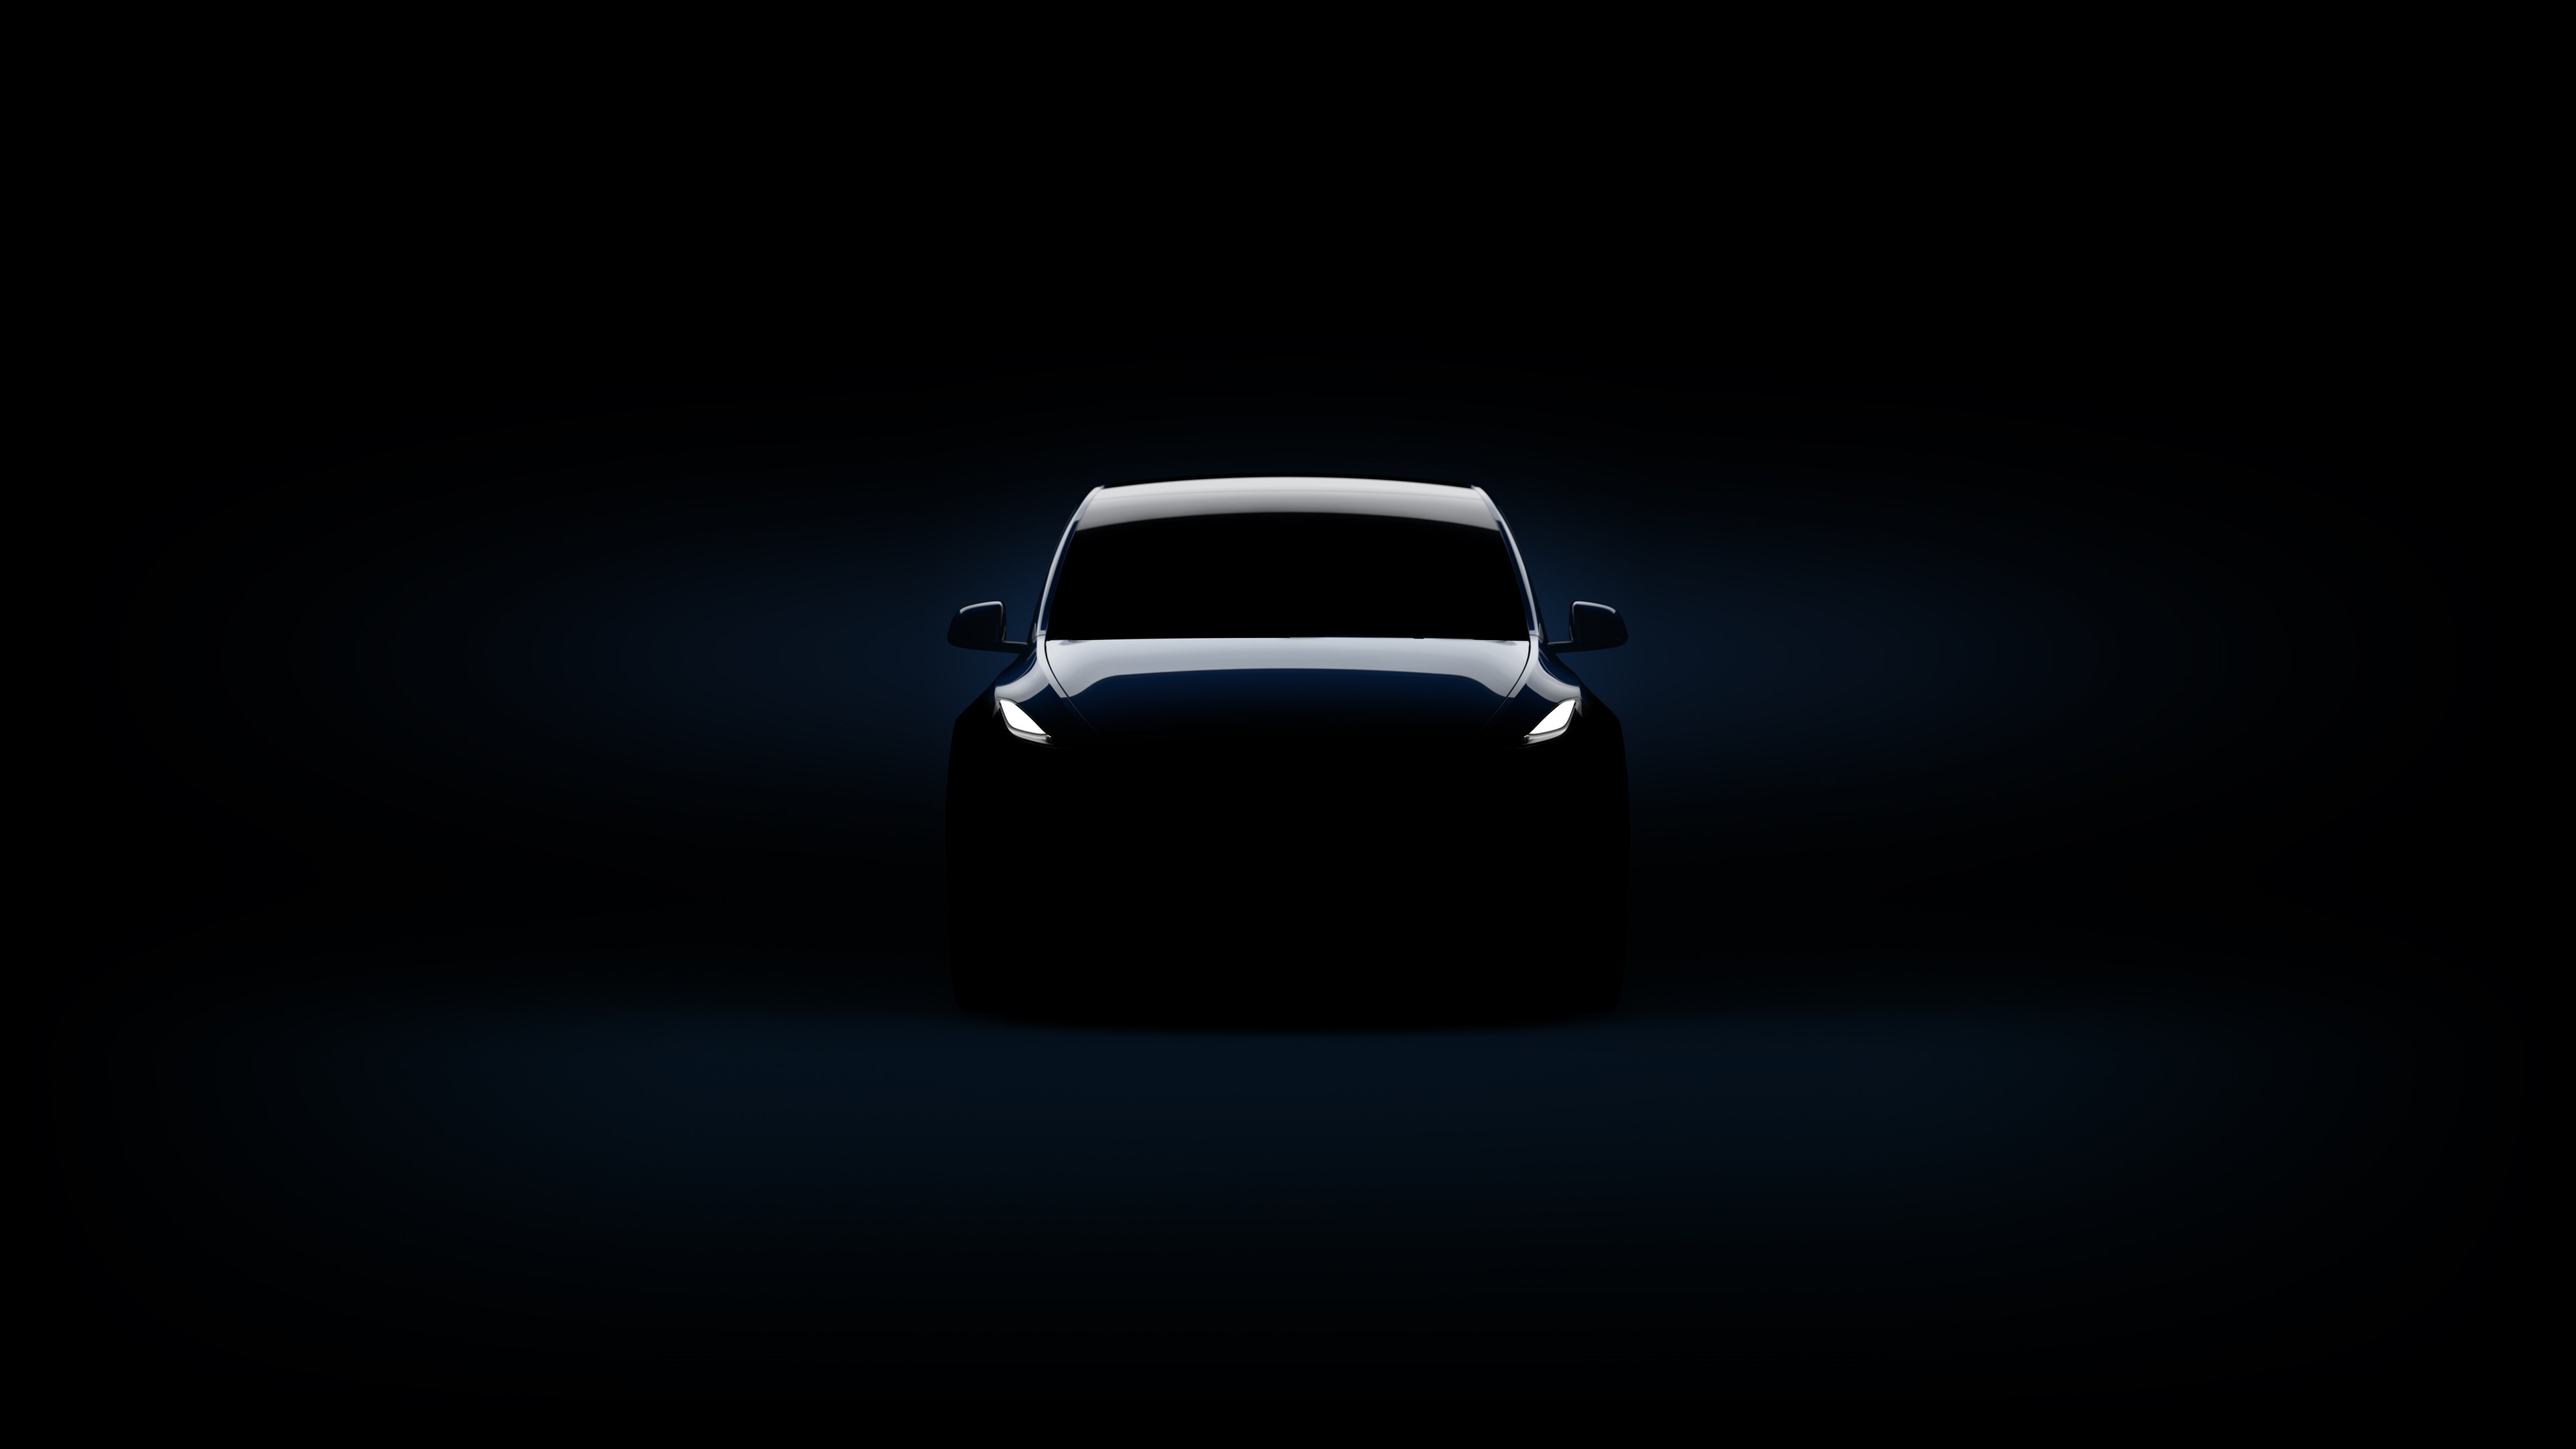 Wallpaper 4k 2019 Tesla Model Y 4k 2019 Cars Wallpapers 4k Wallpapers Cars Wallpapers Hd Wallpapers Tesla Model Y Wallpapers Tesla Wallpapers